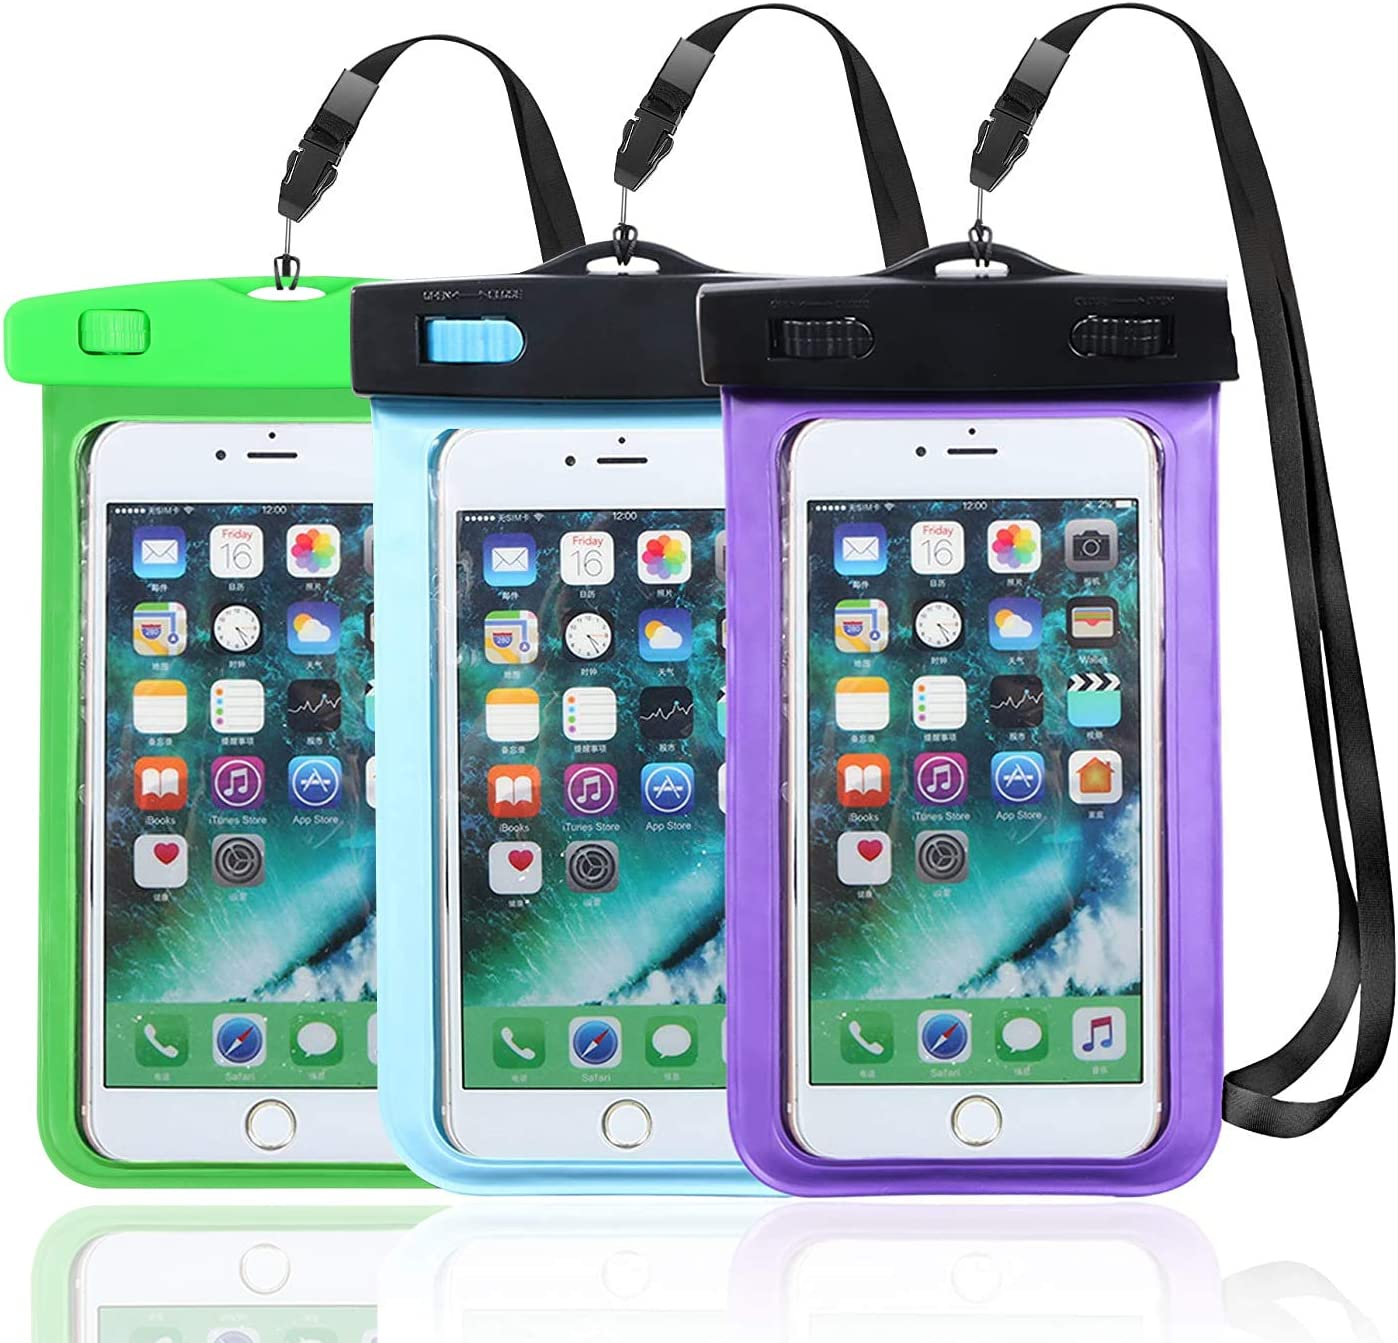 Hartop 3 Pack Waterproof Phone Pouch,Waterproof Cellphone Case Dry Bag for Apple iPhone Xs Max/XR/X/8/8P/7/7P Galaxy up to 7.0